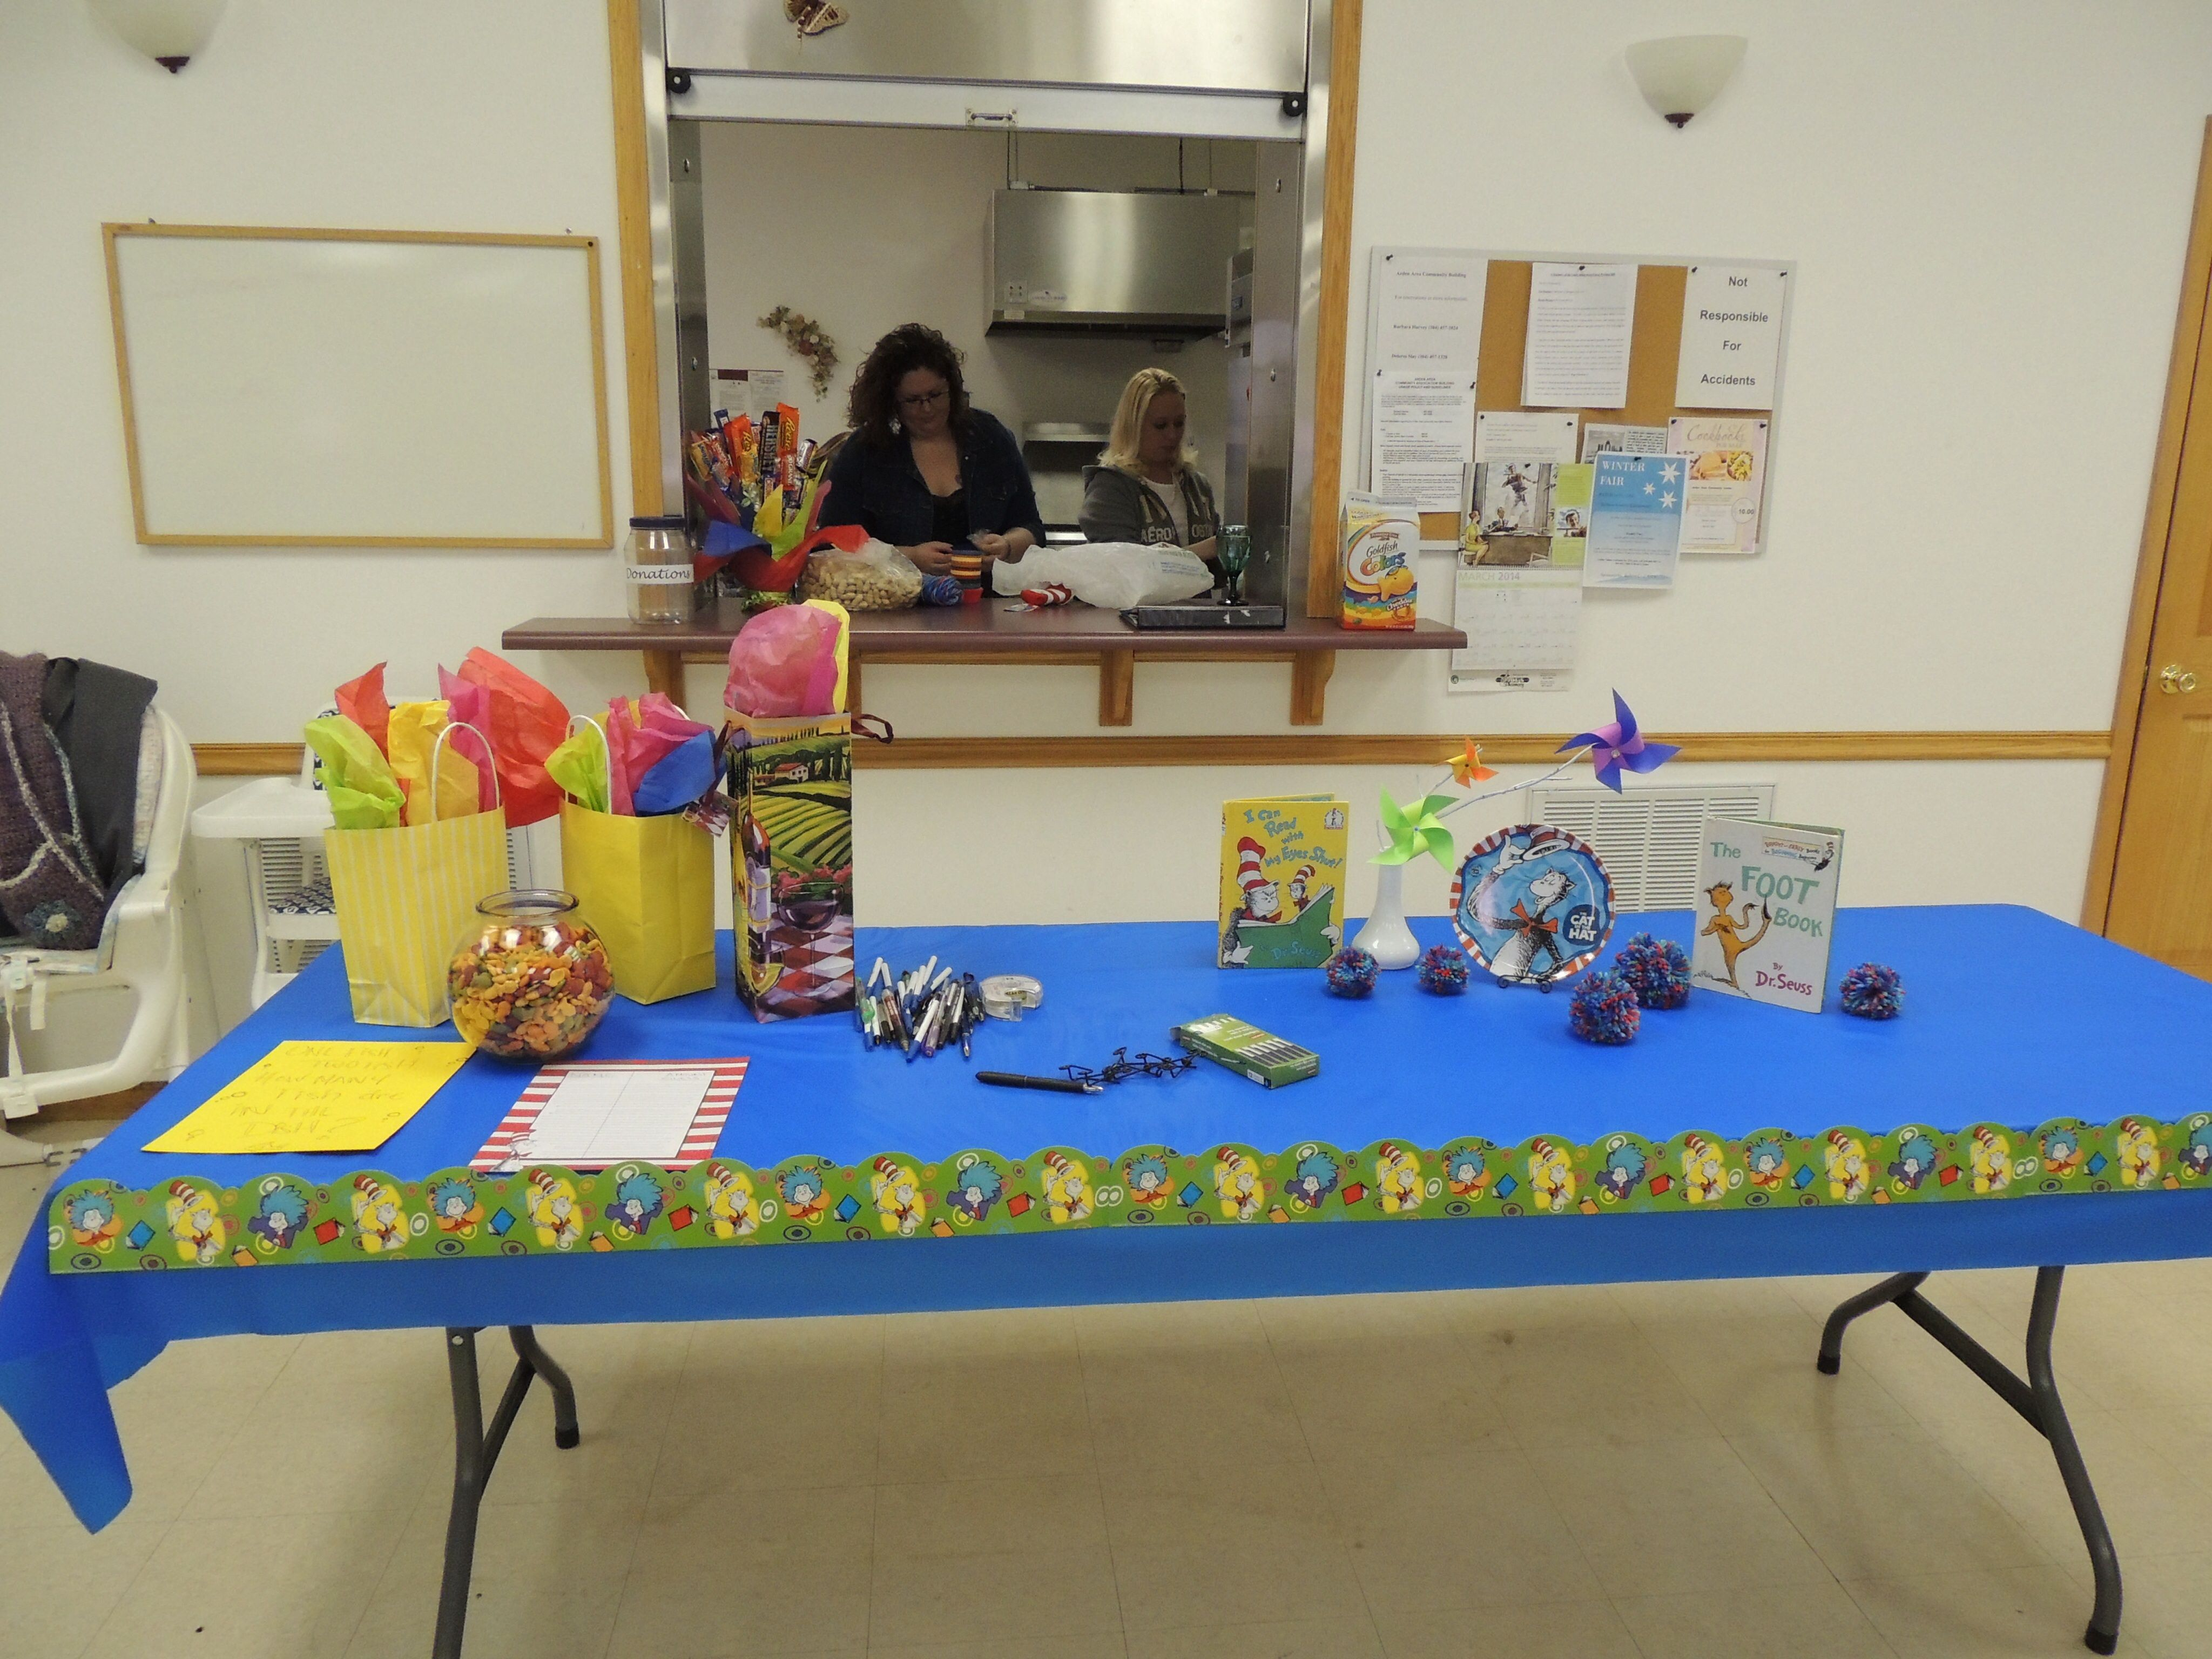 Game and prize table